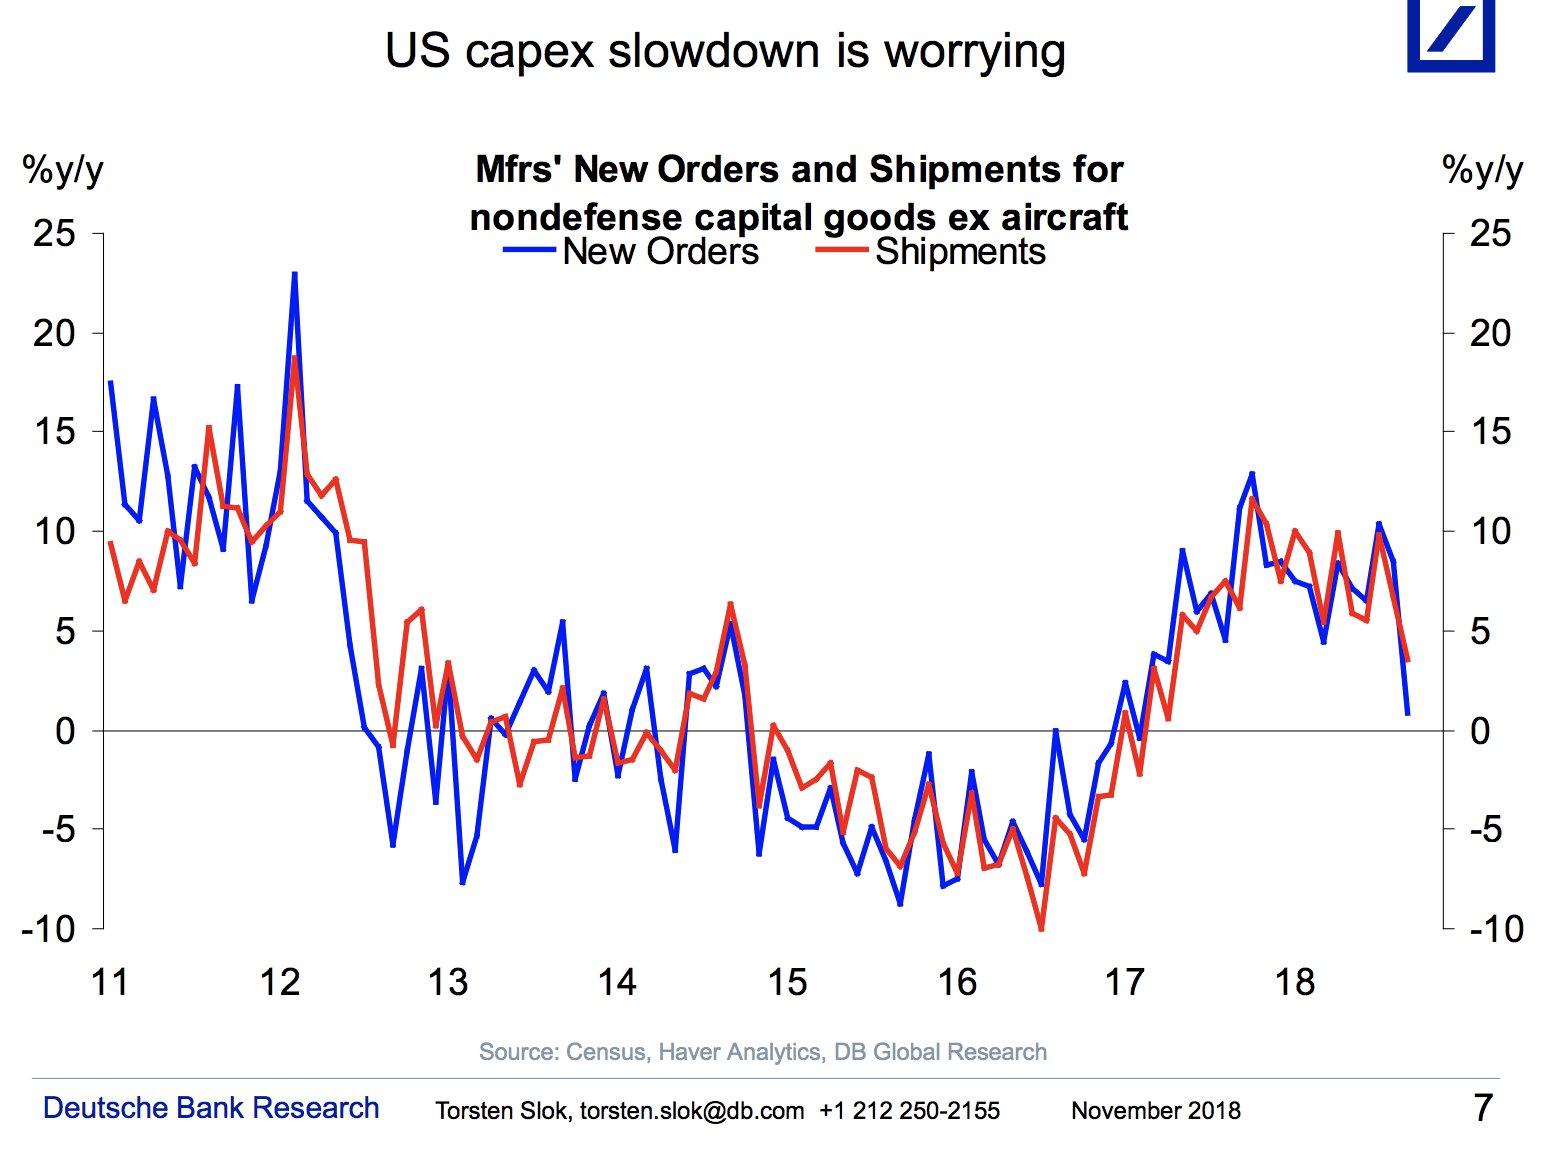 US capex is slowing down…